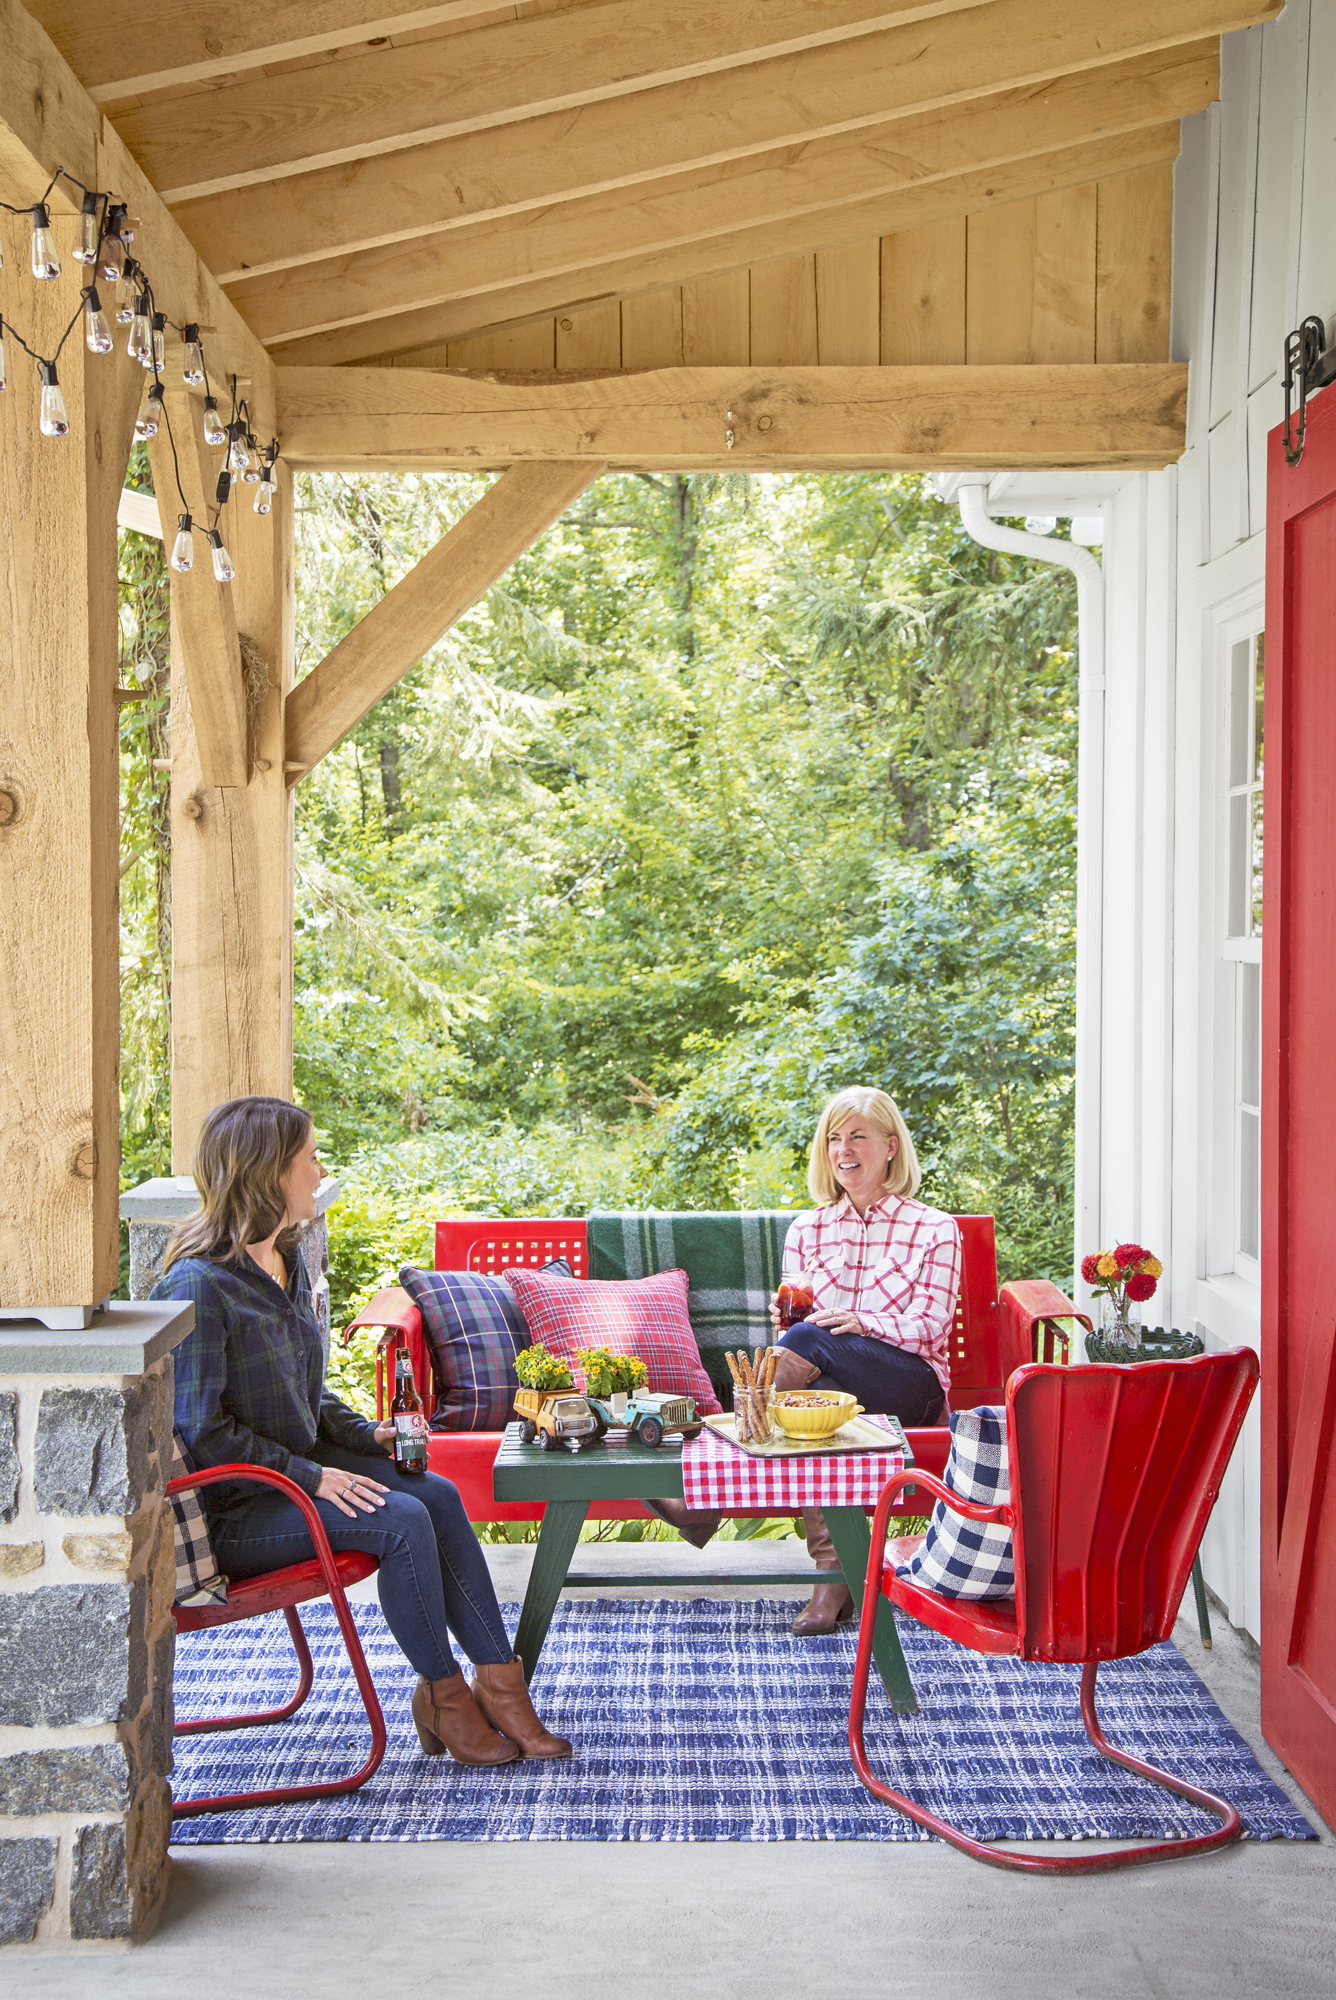 Take A Peek Inside This Party Barn Designed For Hosting